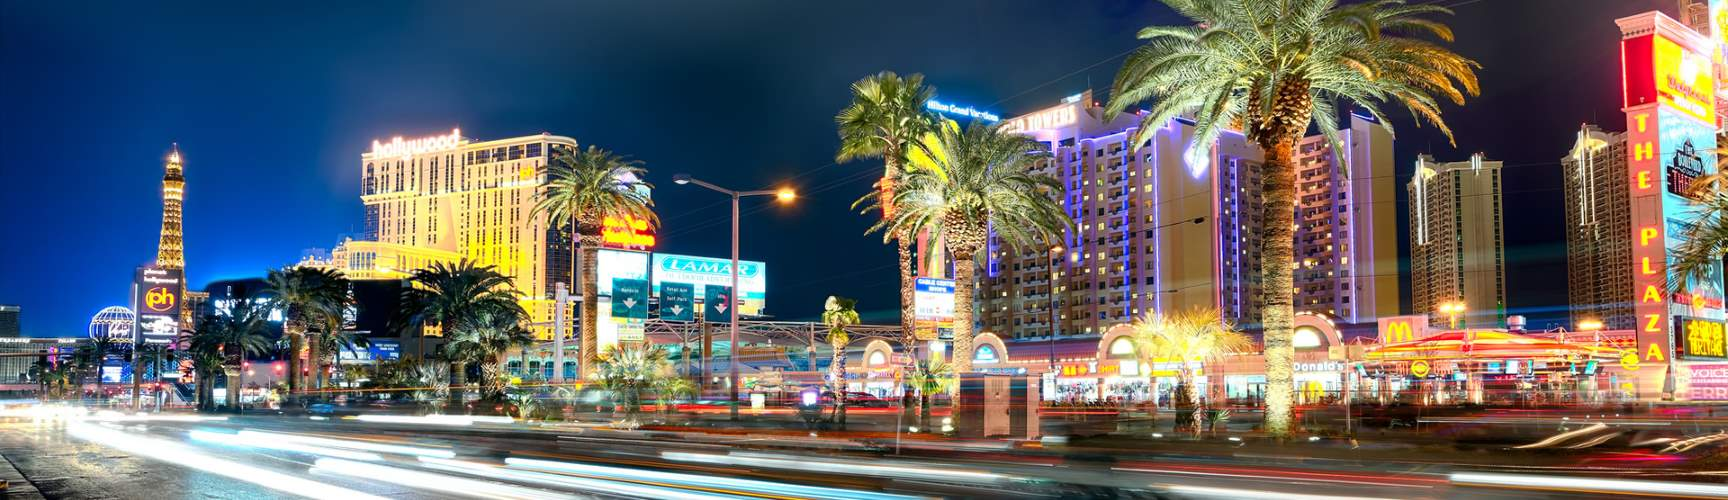 Las Vegas Hotel Car Rental